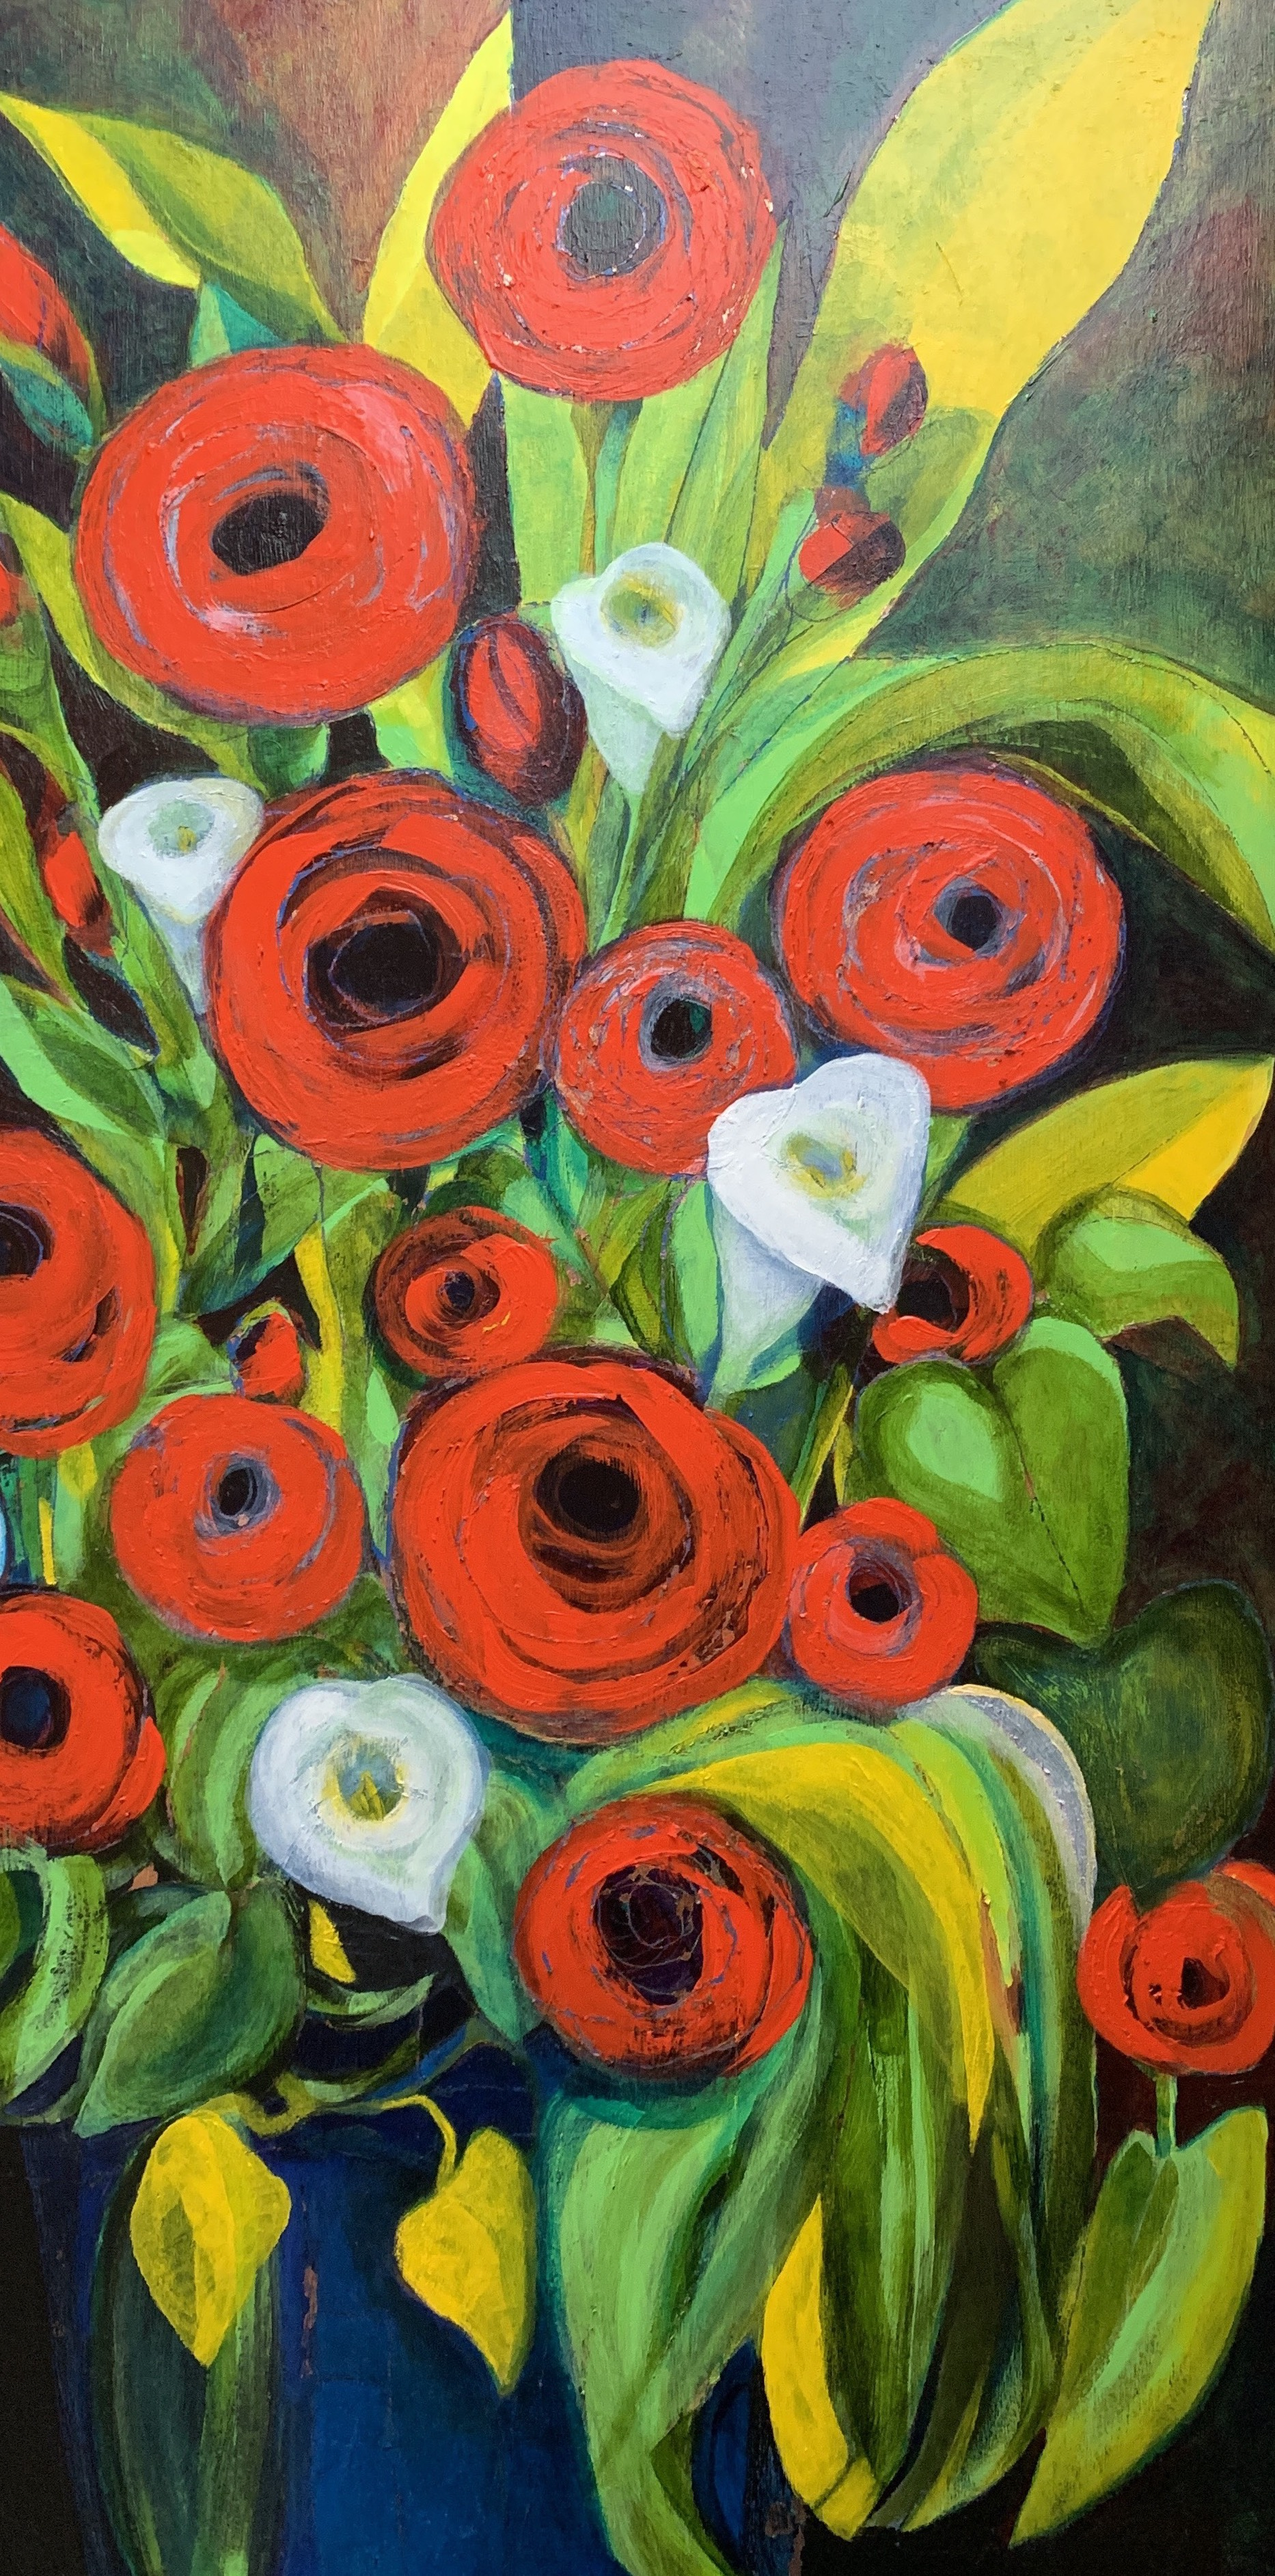 """Red Poppies & Yellow Leaves"", copper leaf, acrylic on panel, 36"" x 18"", $2,000"